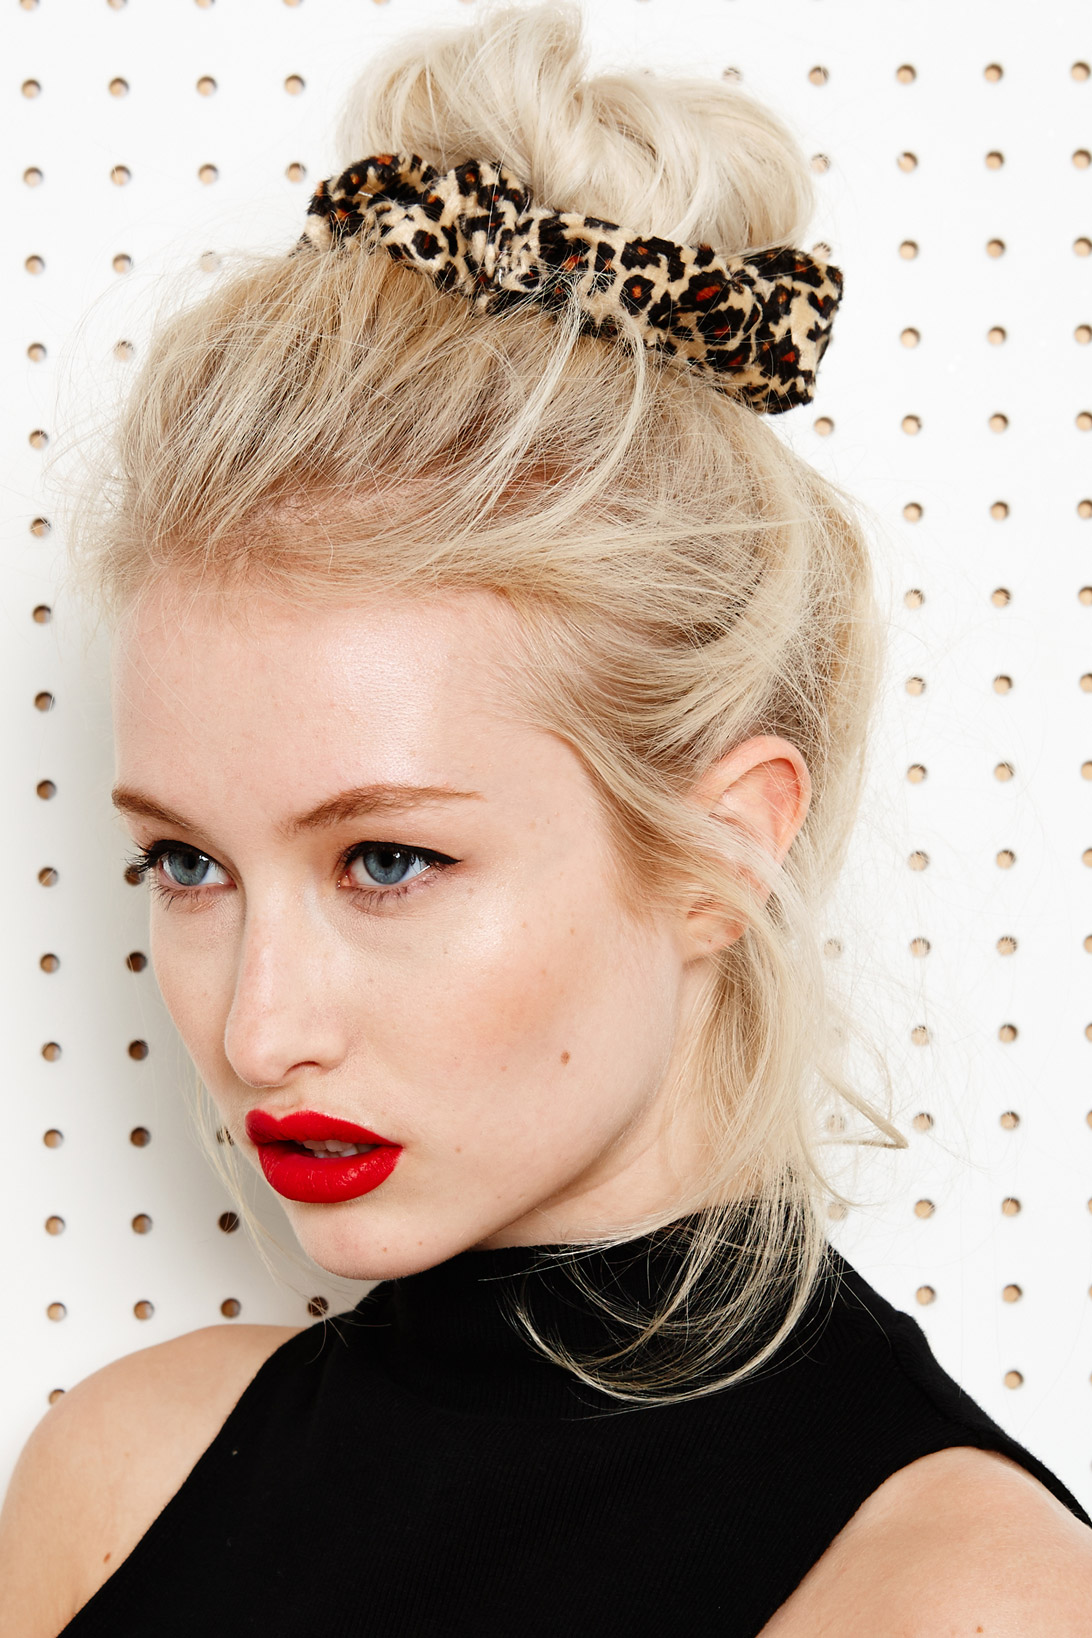 how-to-style-hair-accessories-scrunchies-hairstyles-ways-to-wear-ponytail-high-bun-messy-leopard.jpg